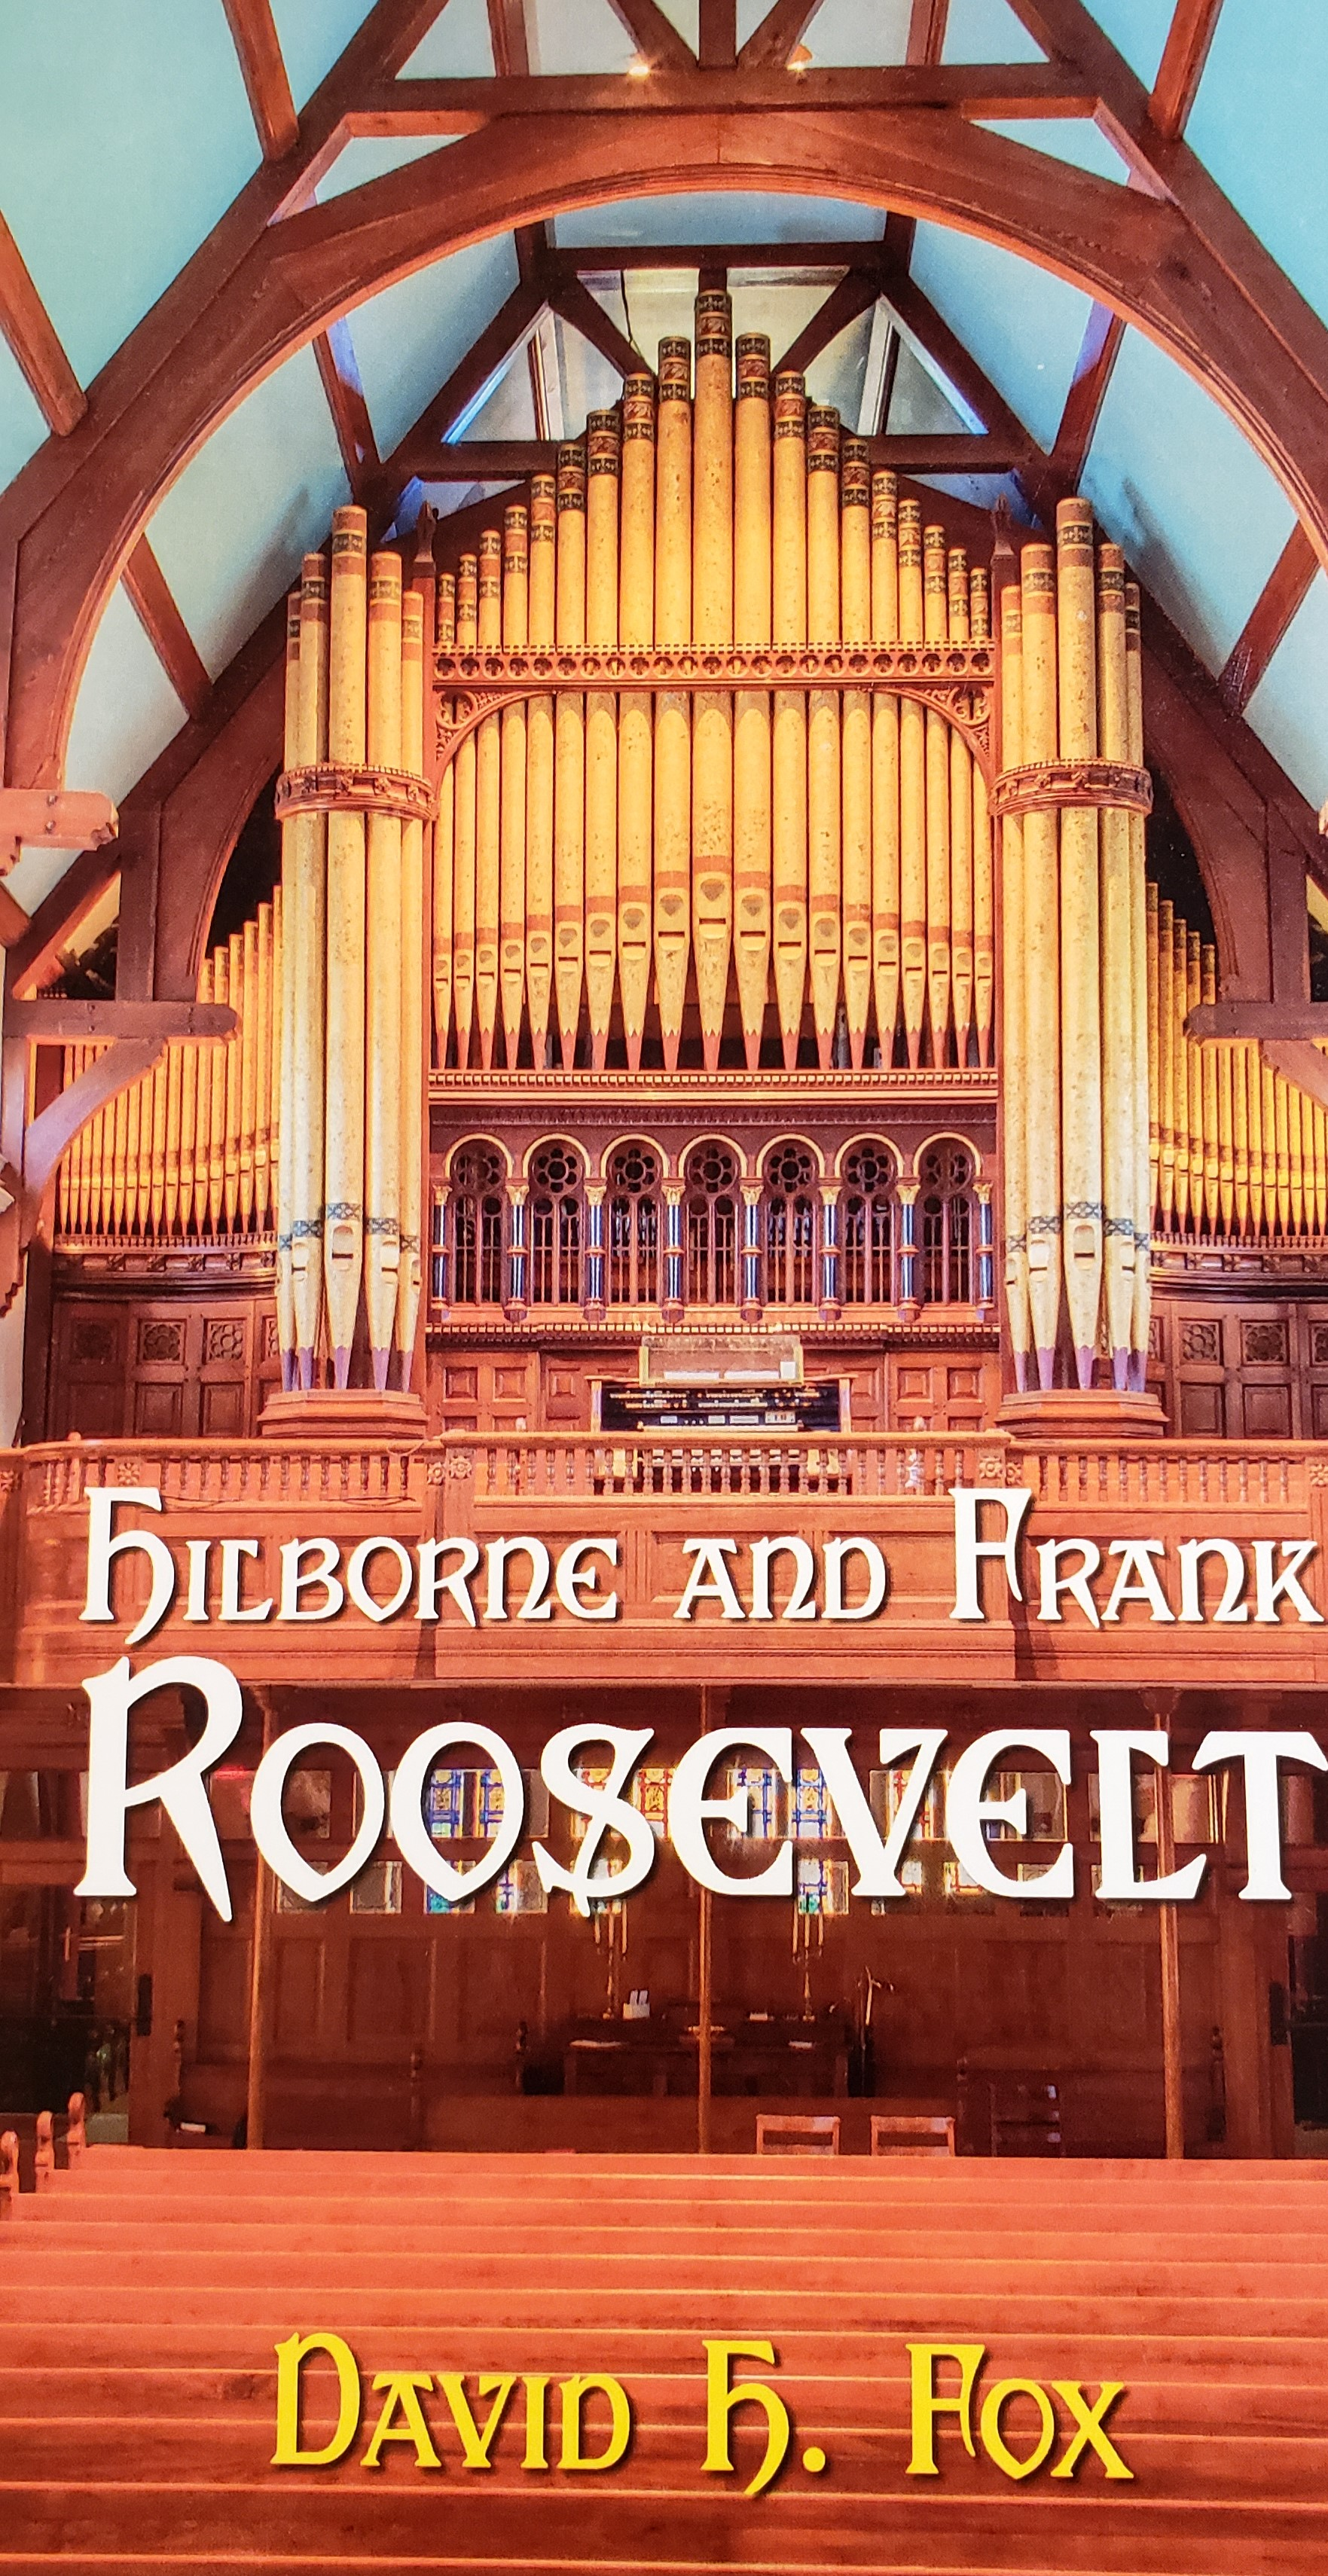 A fascinating look at the Hilborne and Frank Roosevelt Organ Company, with many photos and complete appendices on the locations of Roosevelt's instruments.  366 pgs, soft cover